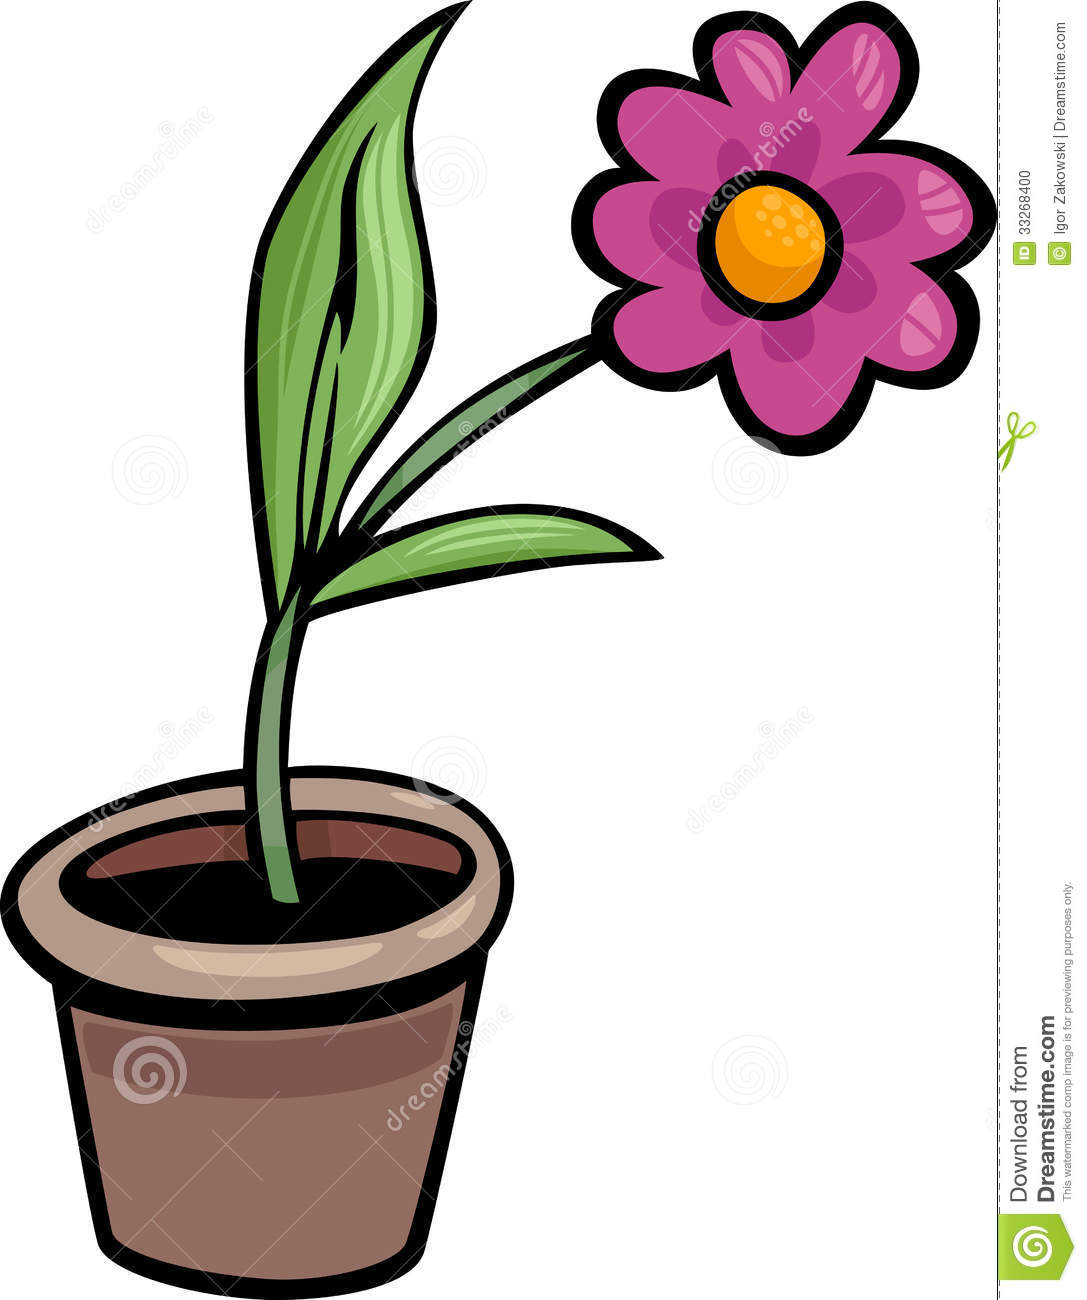 1087x1300 Quality Flower Cartoon Pictures Clip Art Single Forget Me Not Free